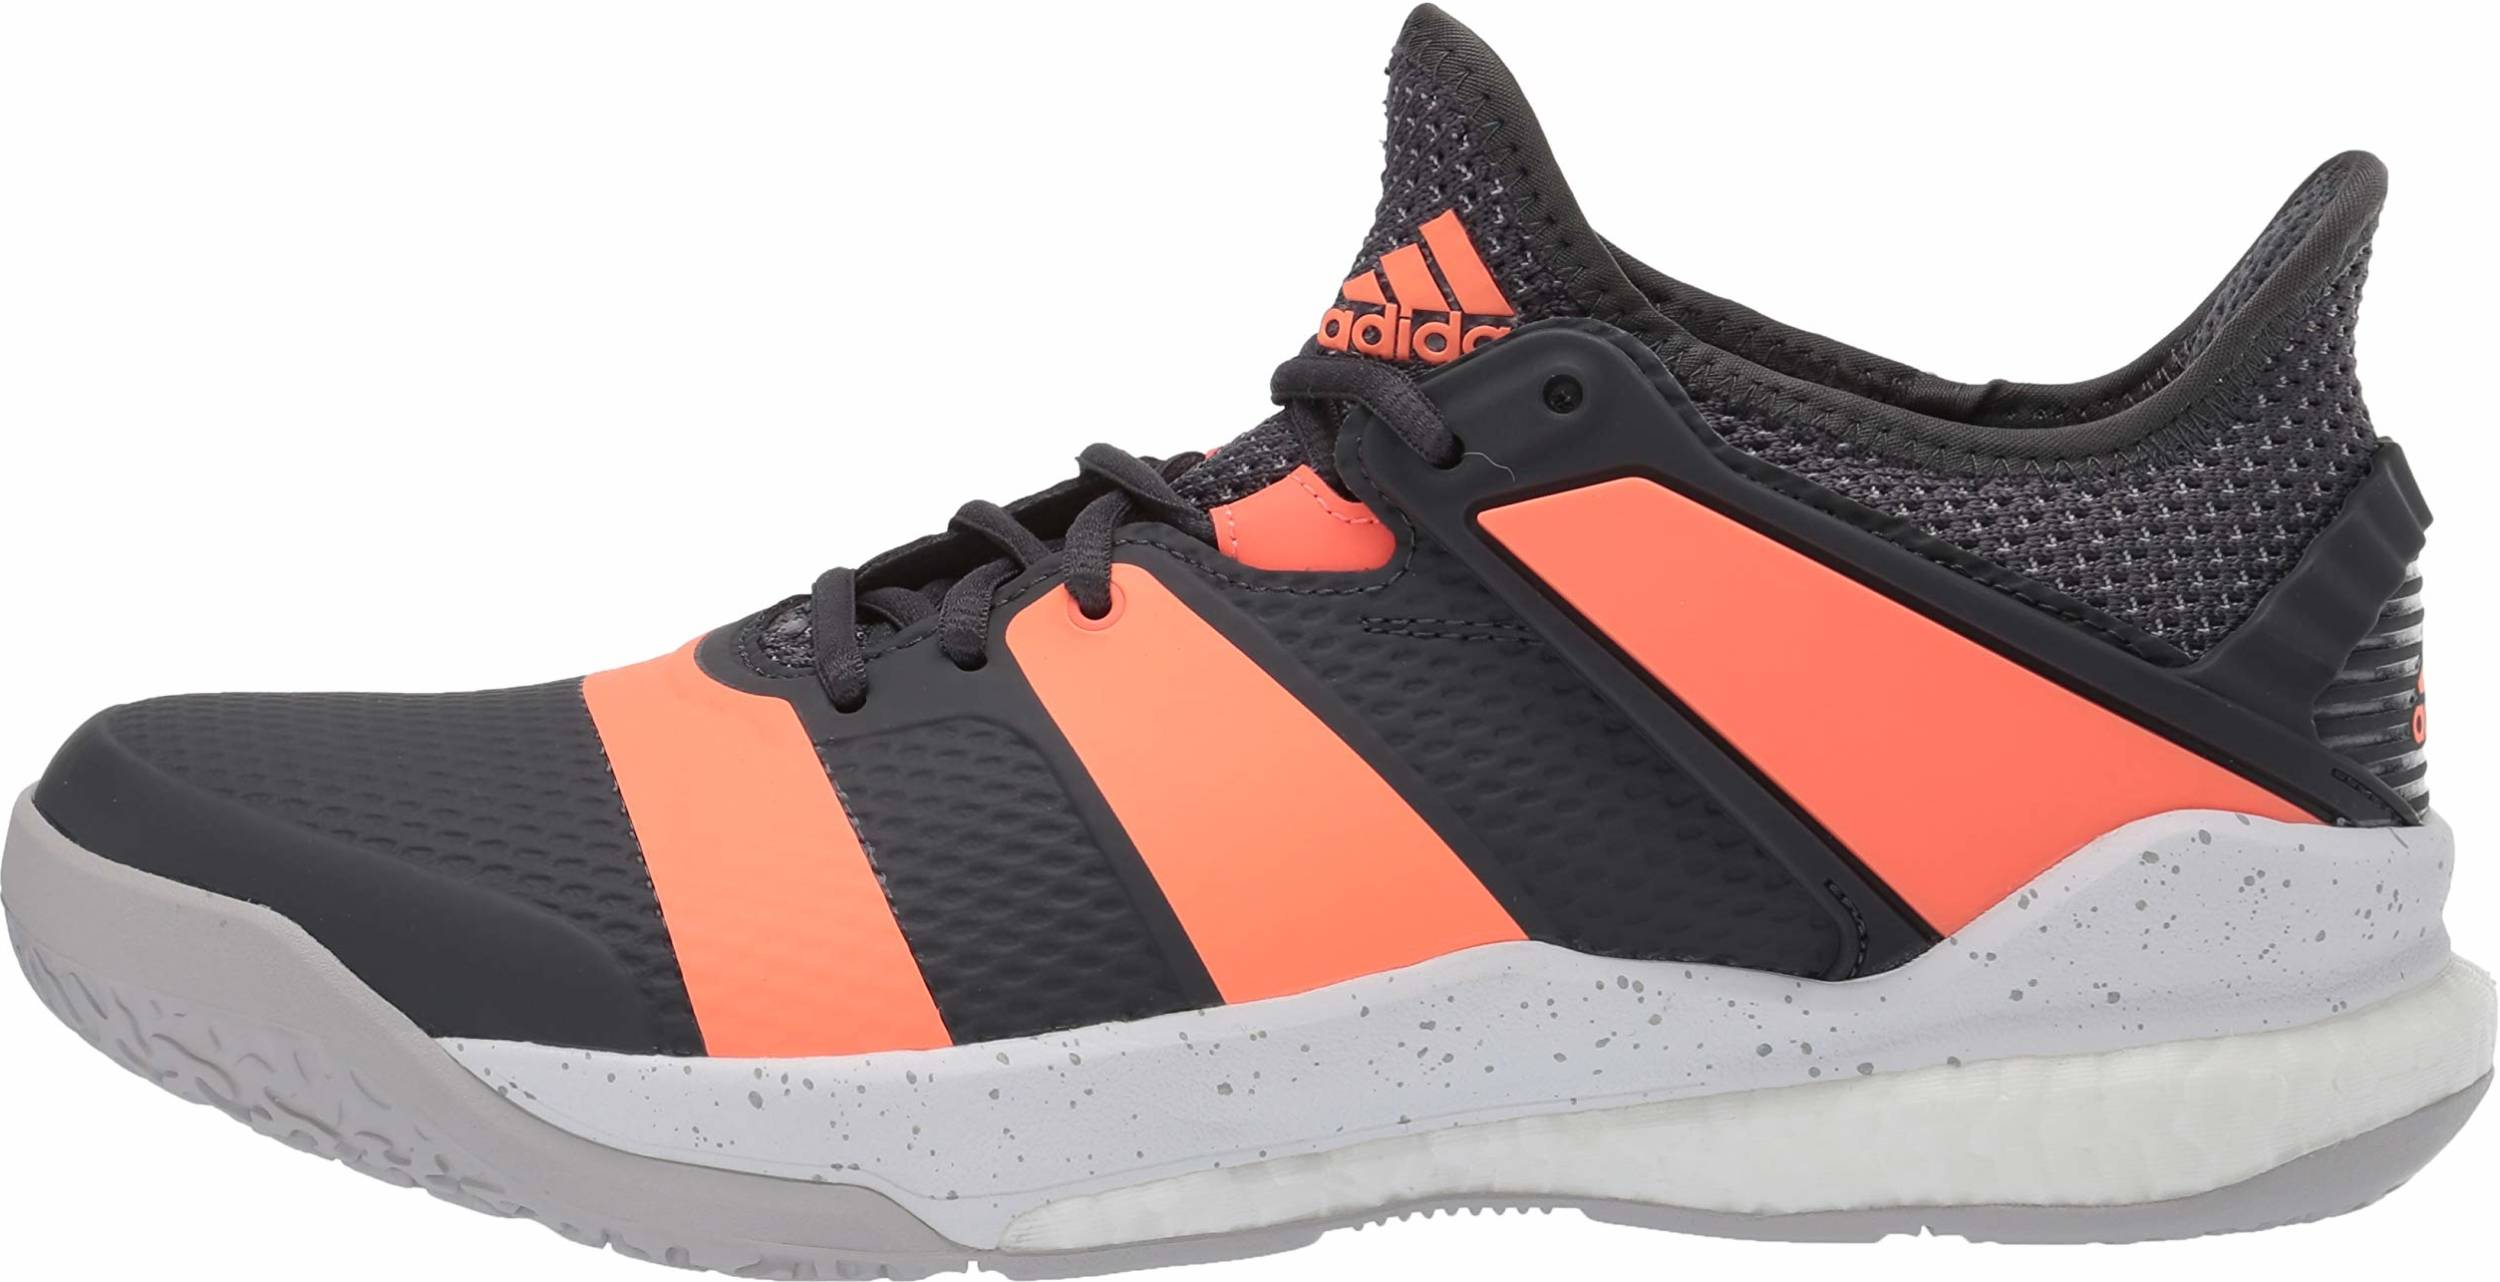 Only $47 + Review of Adidas Stabil X